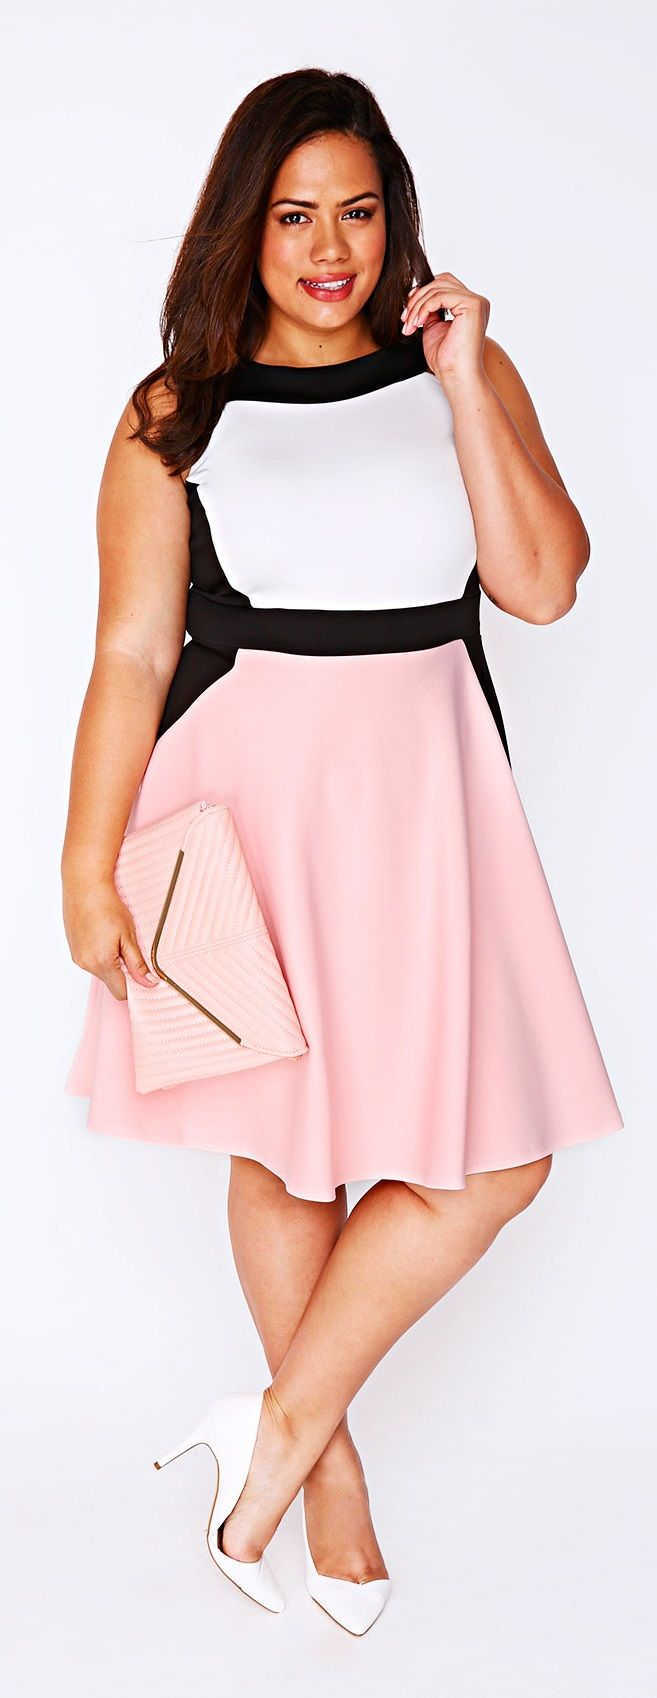 Plus Size Color Block Skater Dress                                                                                                                                                                                 More  Explore our amazing collection of plus size fashion styles and clothing. http://wholesaleplussize.clothing/